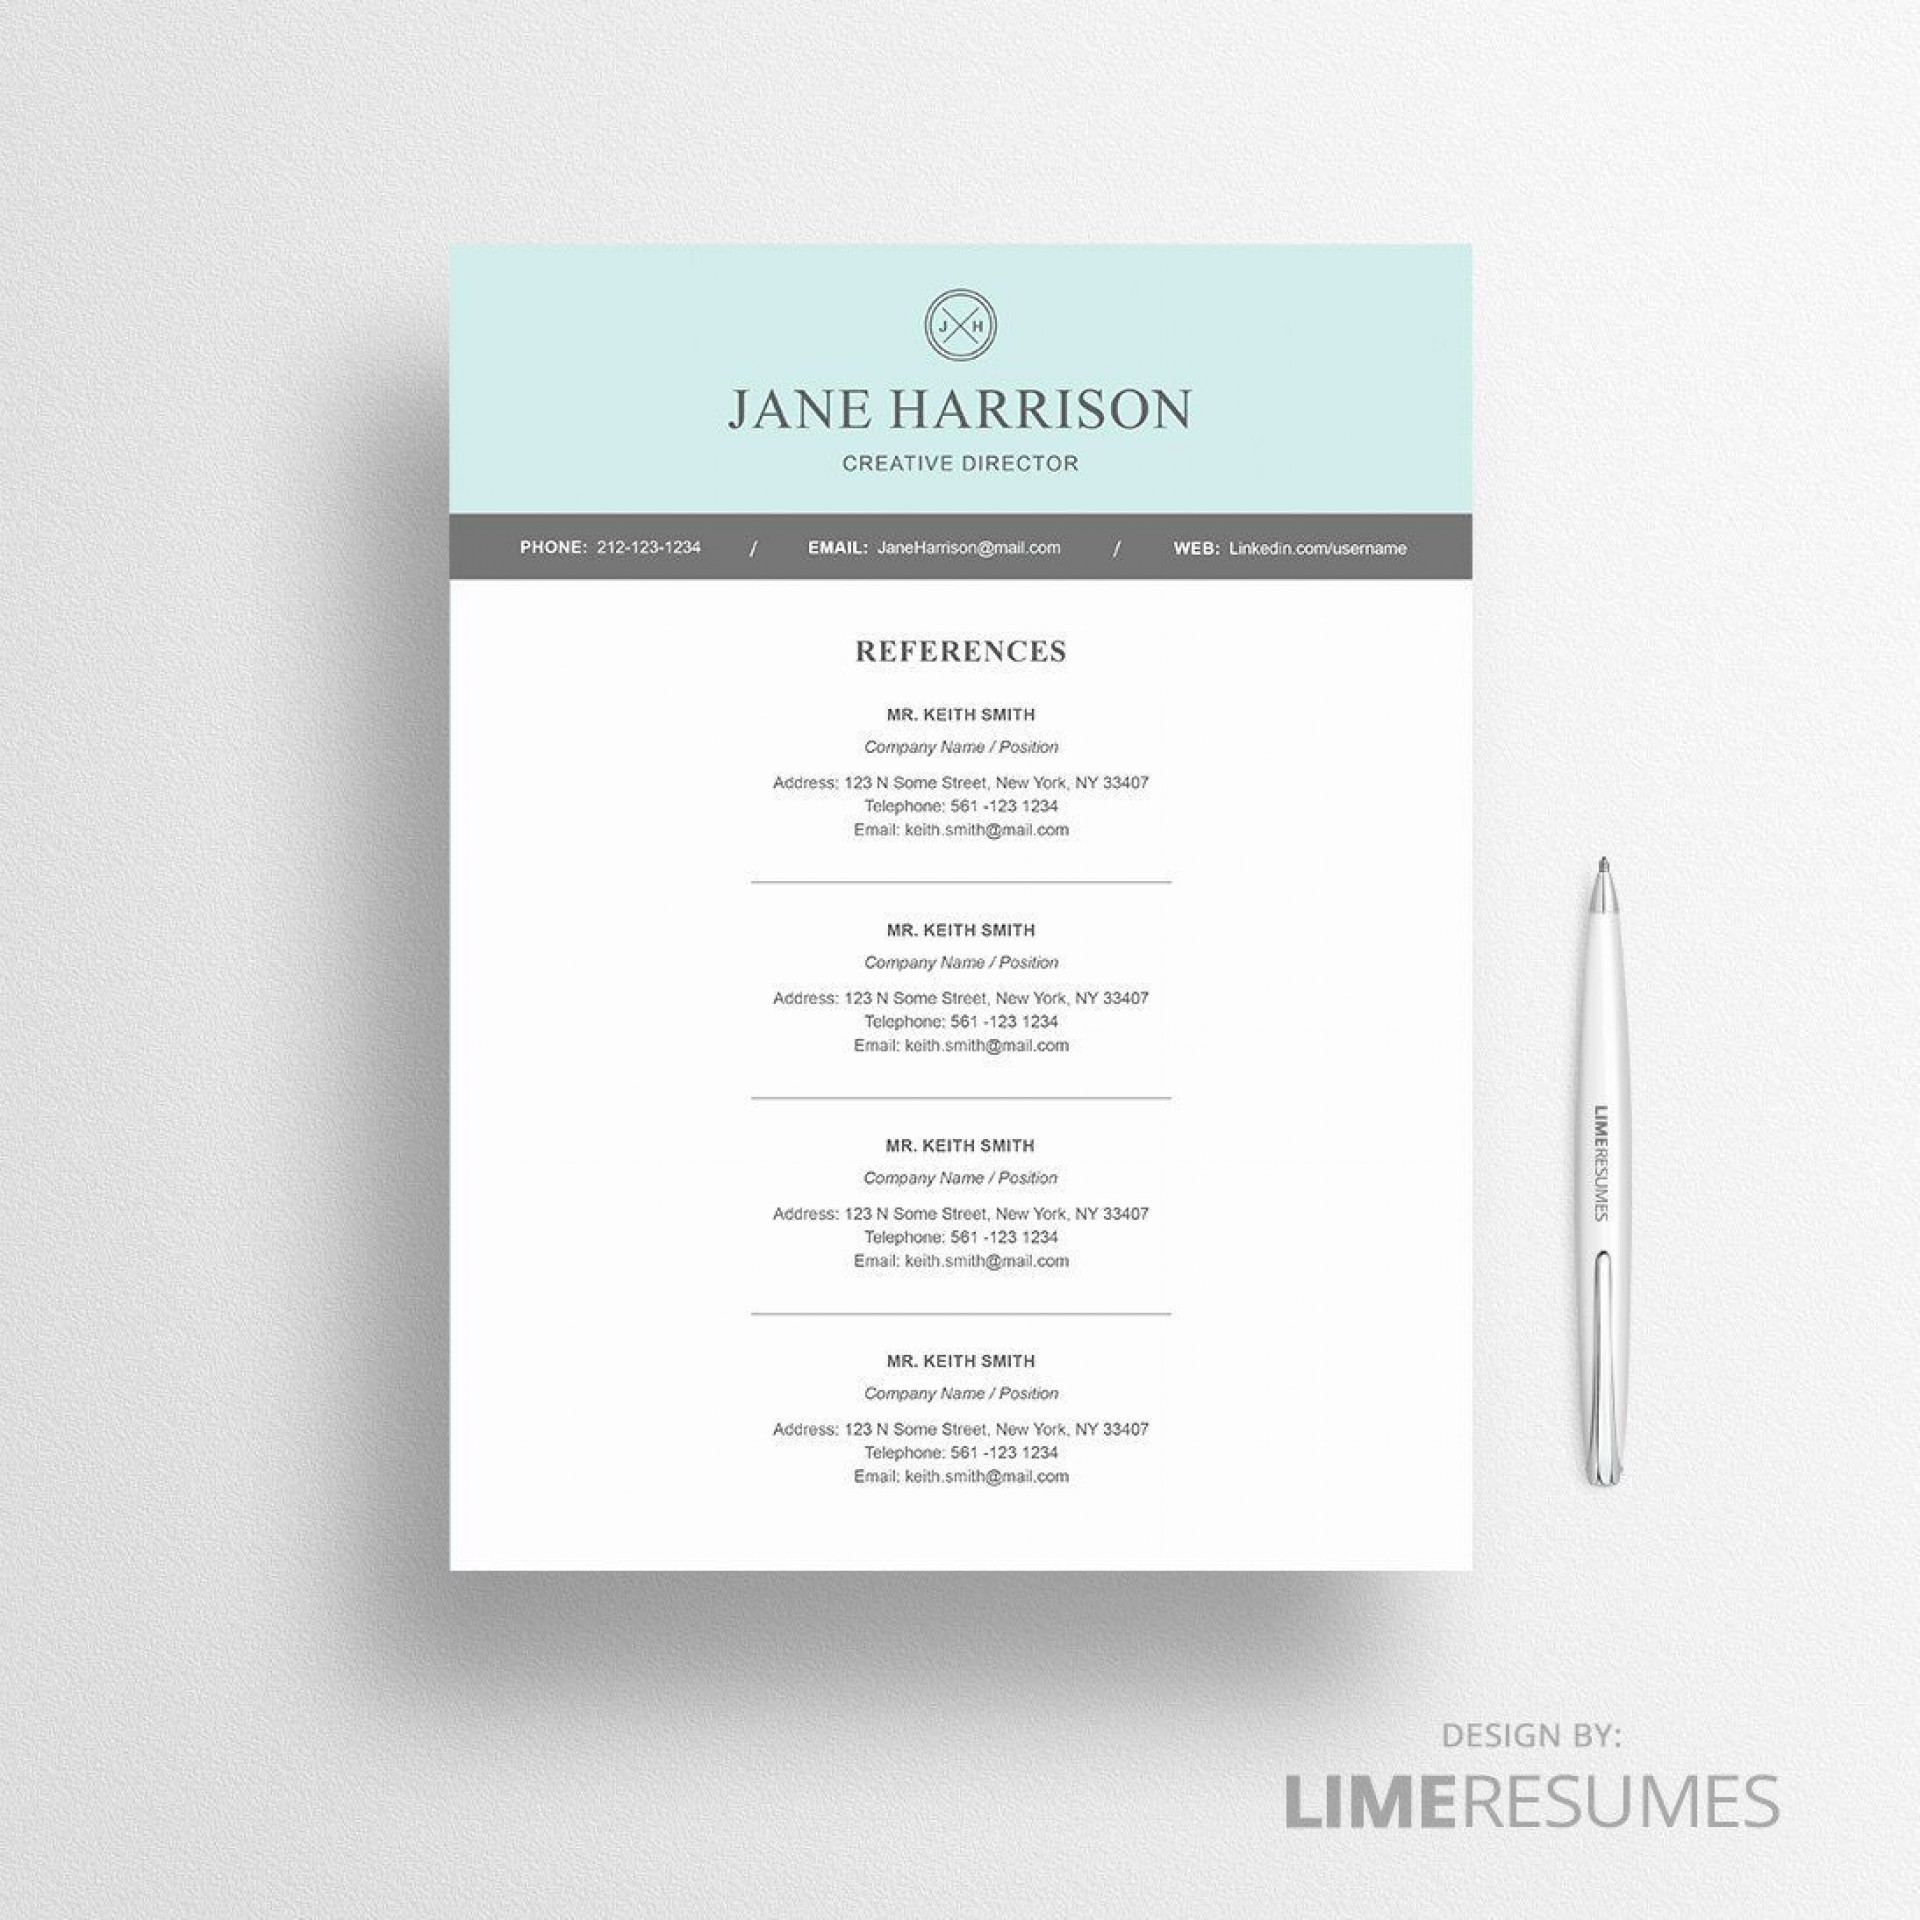 005 Unbelievable Resume Reference List Template Microsoft Word Design 1920